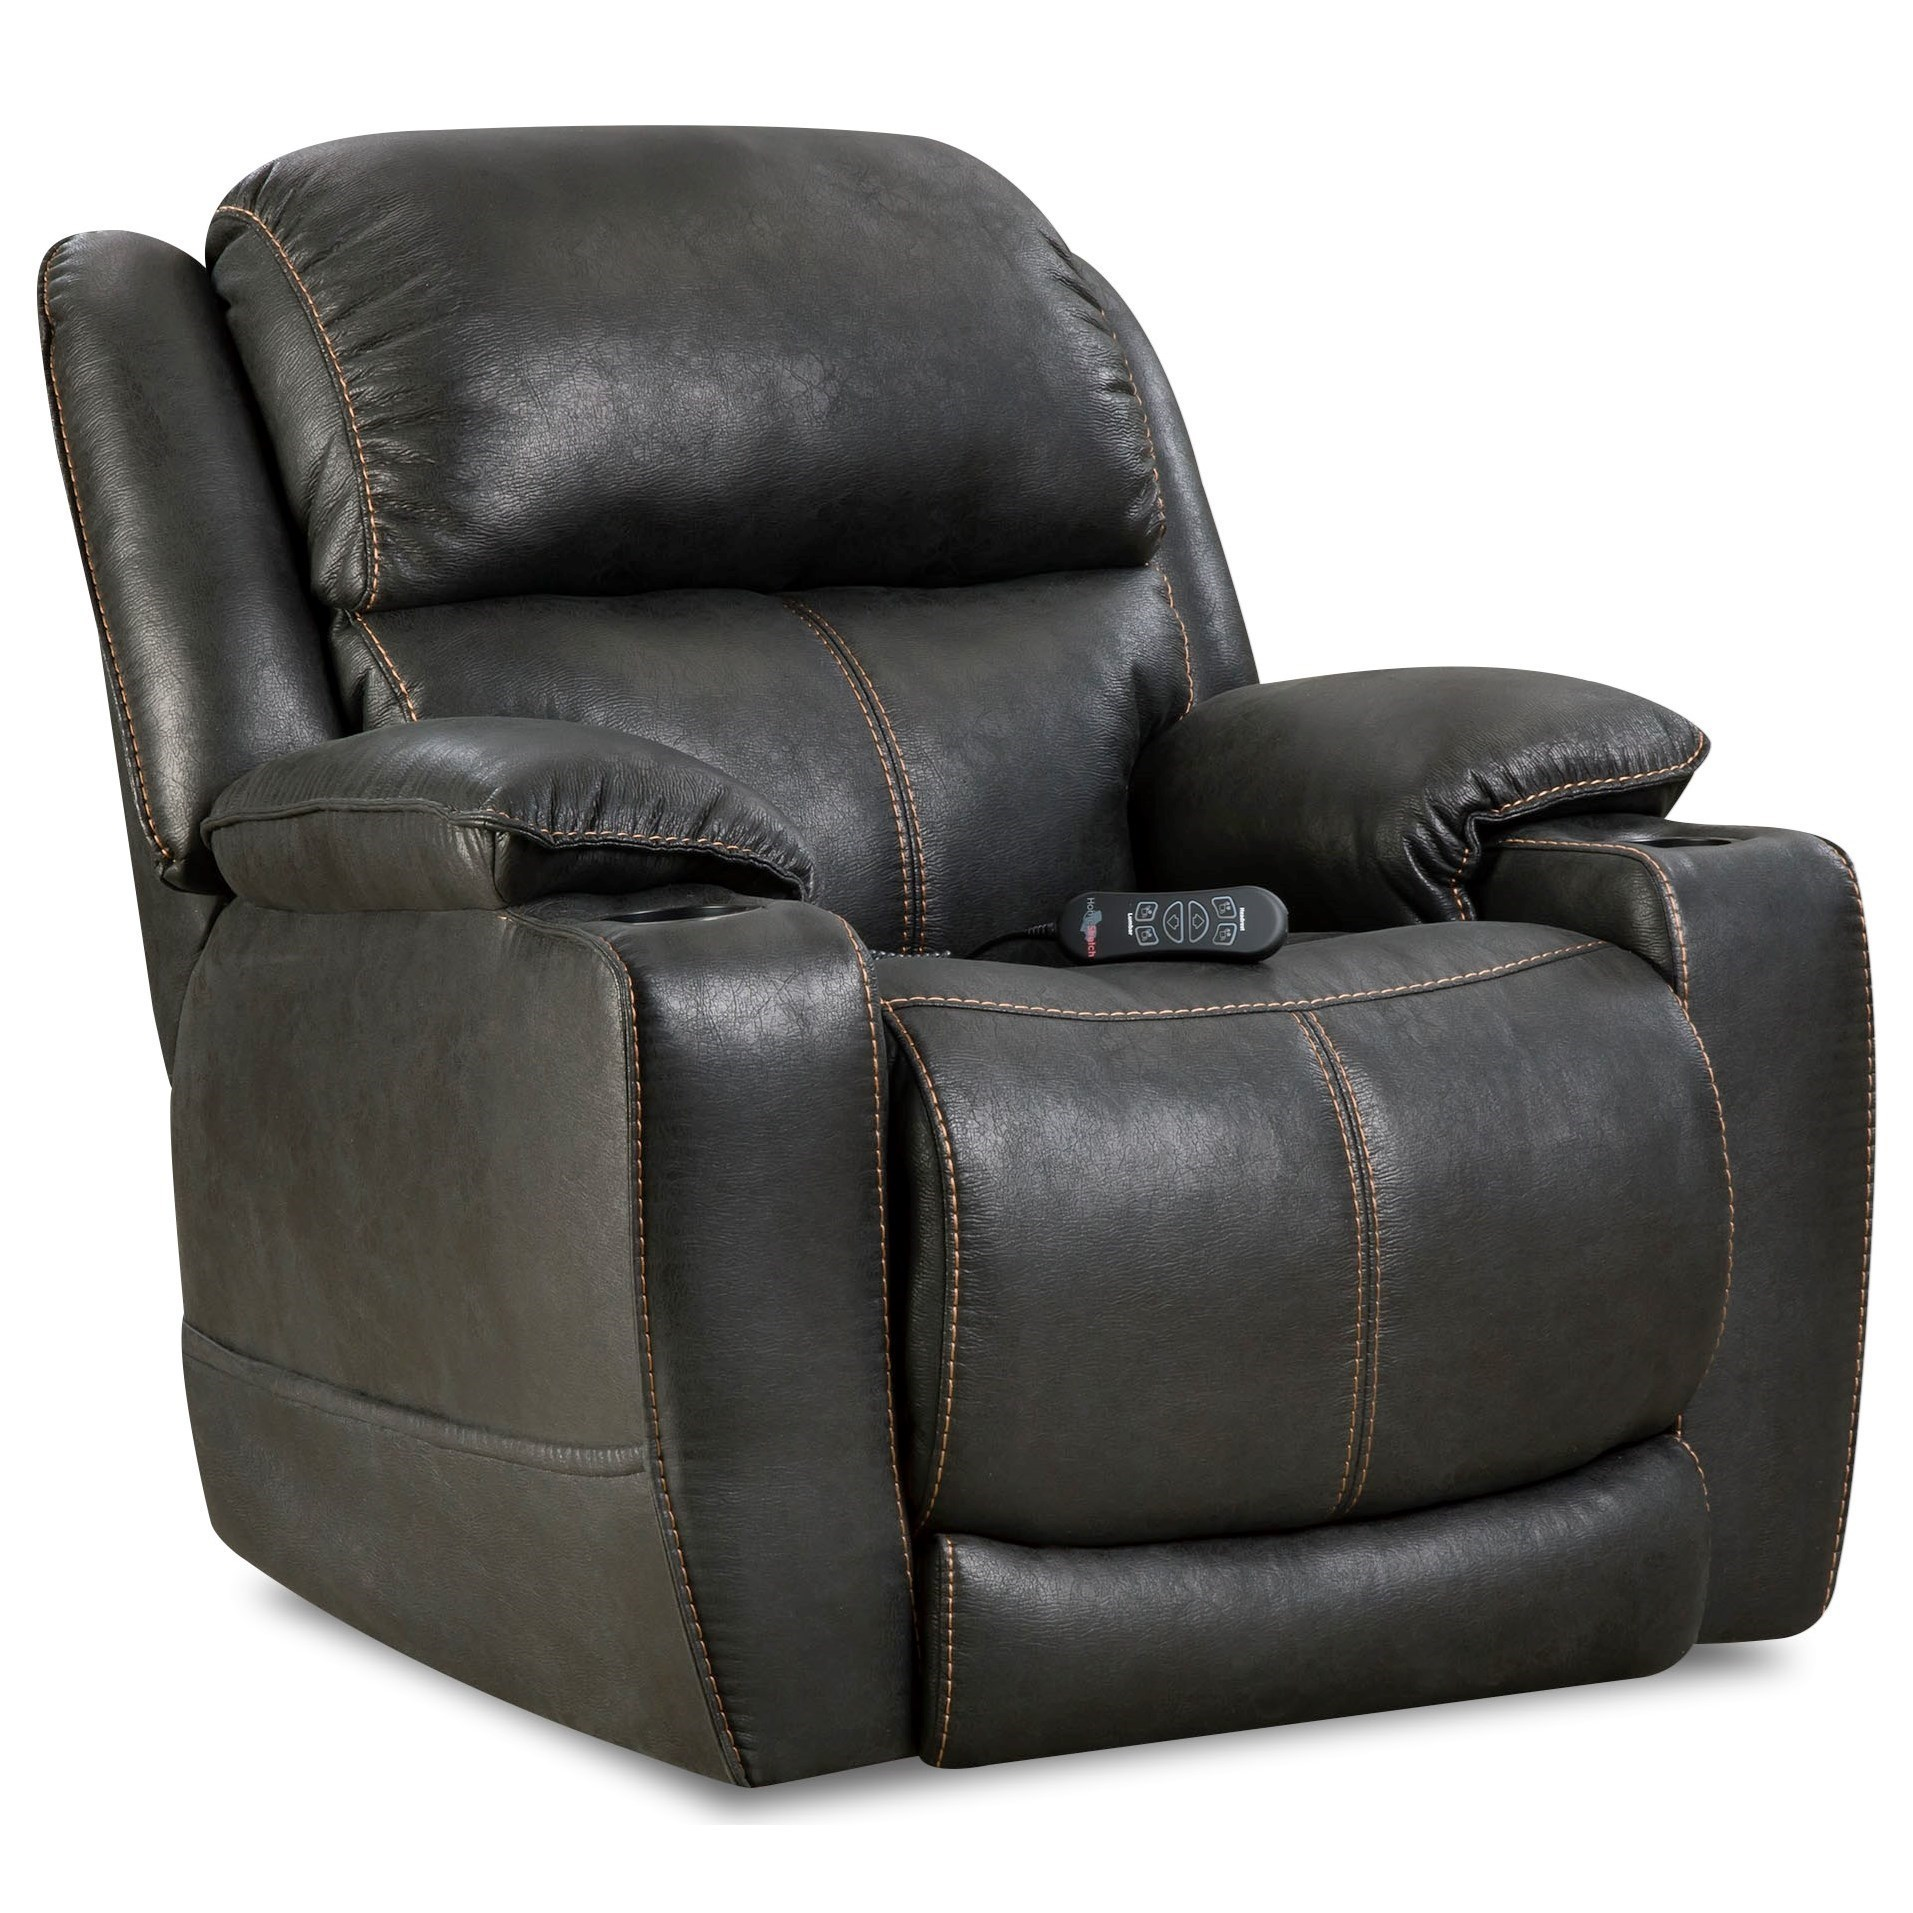 HomeStretch Starship Casual Home Theater Recliner with Cup Holders - Great American Home Store - Three Way Recliners  sc 1 st  Great American Home Store & HomeStretch Starship Casual Home Theater Recliner with Cup Holders ... islam-shia.org